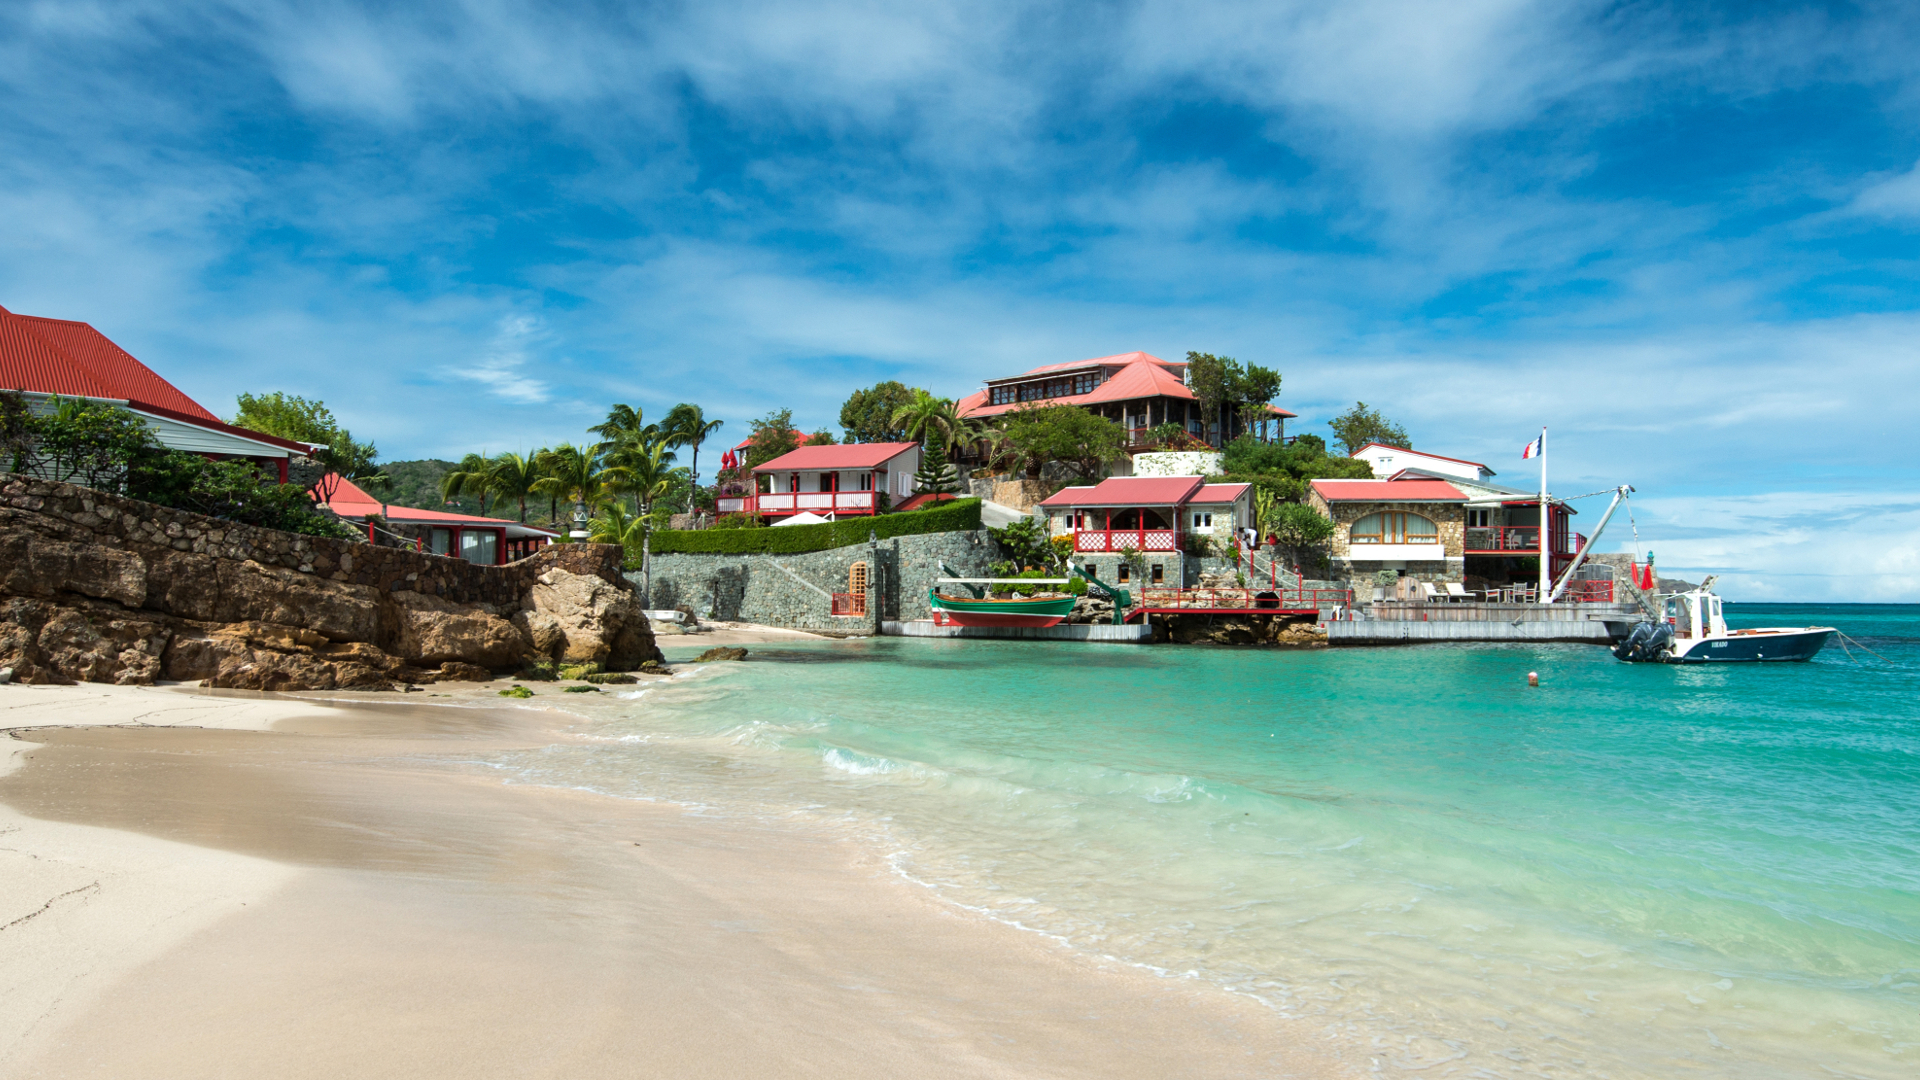 Best Island Beaches For Partying Mykonos St Barts: 5 Ways To Experience Spendy St. Barts On